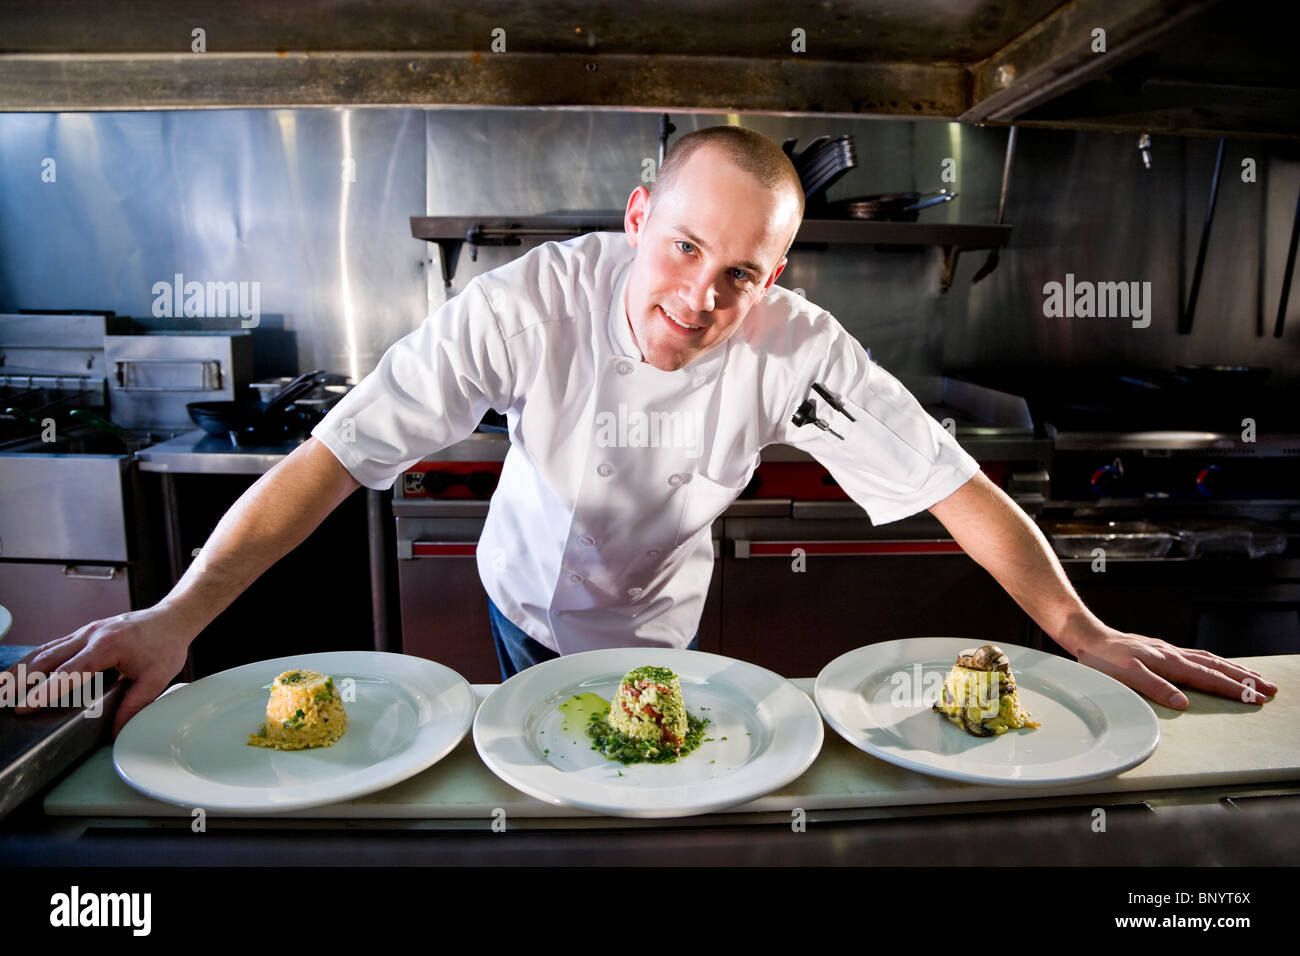 Restaurant Kitchen Chefs chef in restaurant kitchen preparing gourmet dishes stock photo